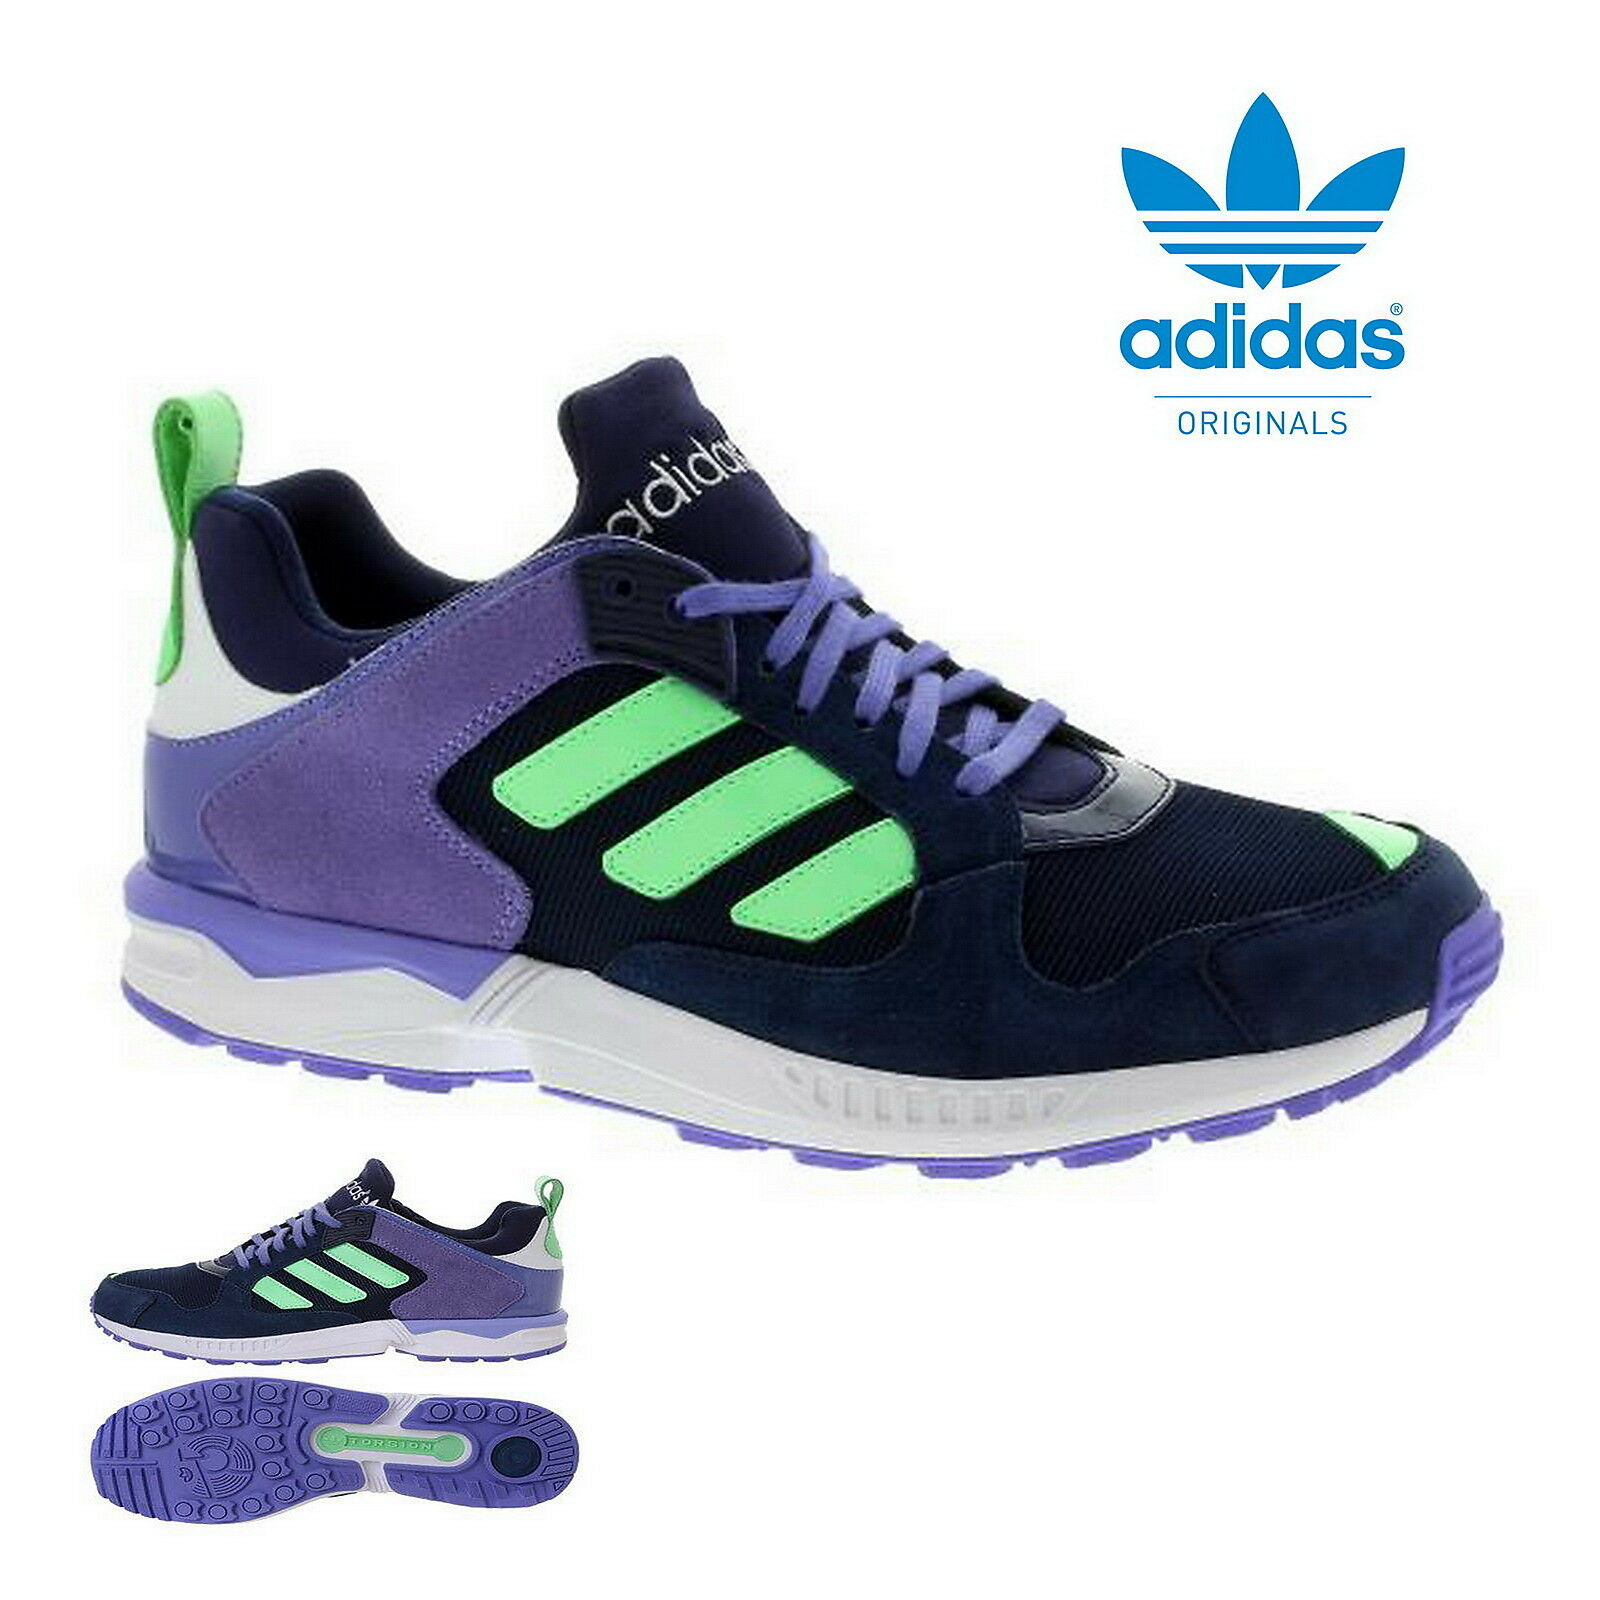 Adidas ZX 5000 Originals Turnschuhe B25875 | Creative Damen